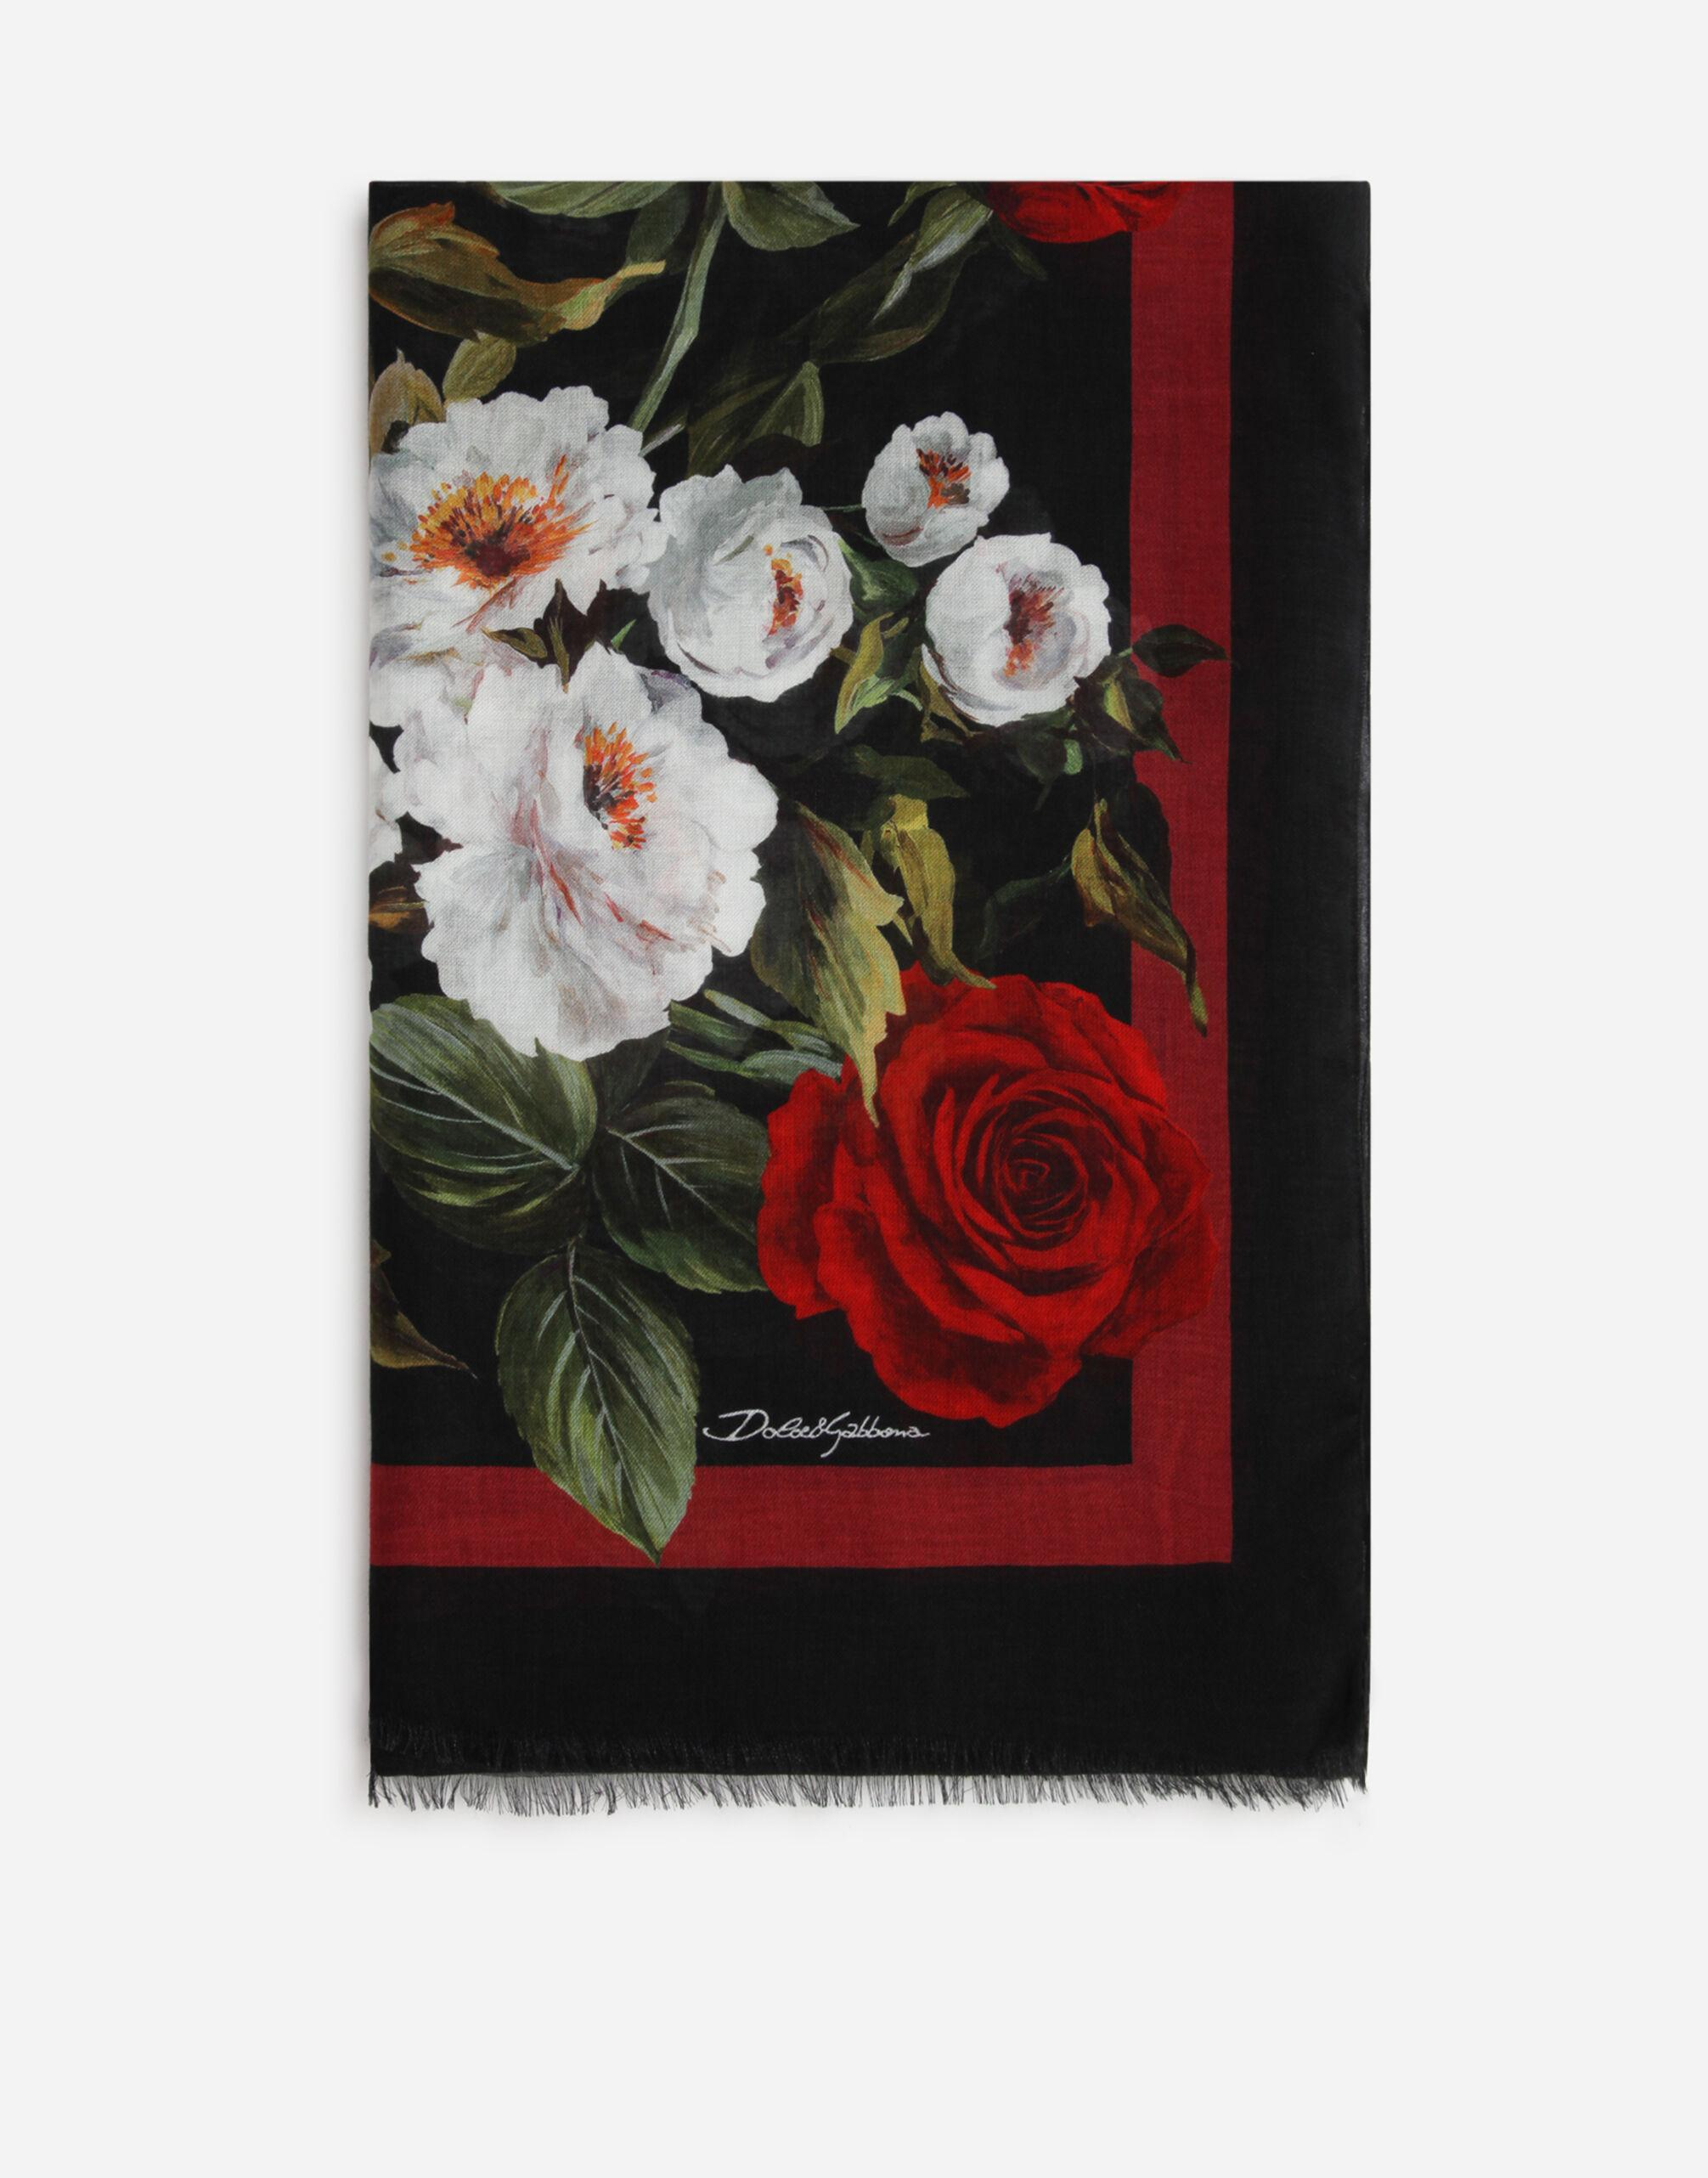 Rose-print cashmere and modal scarf (135 x 200)